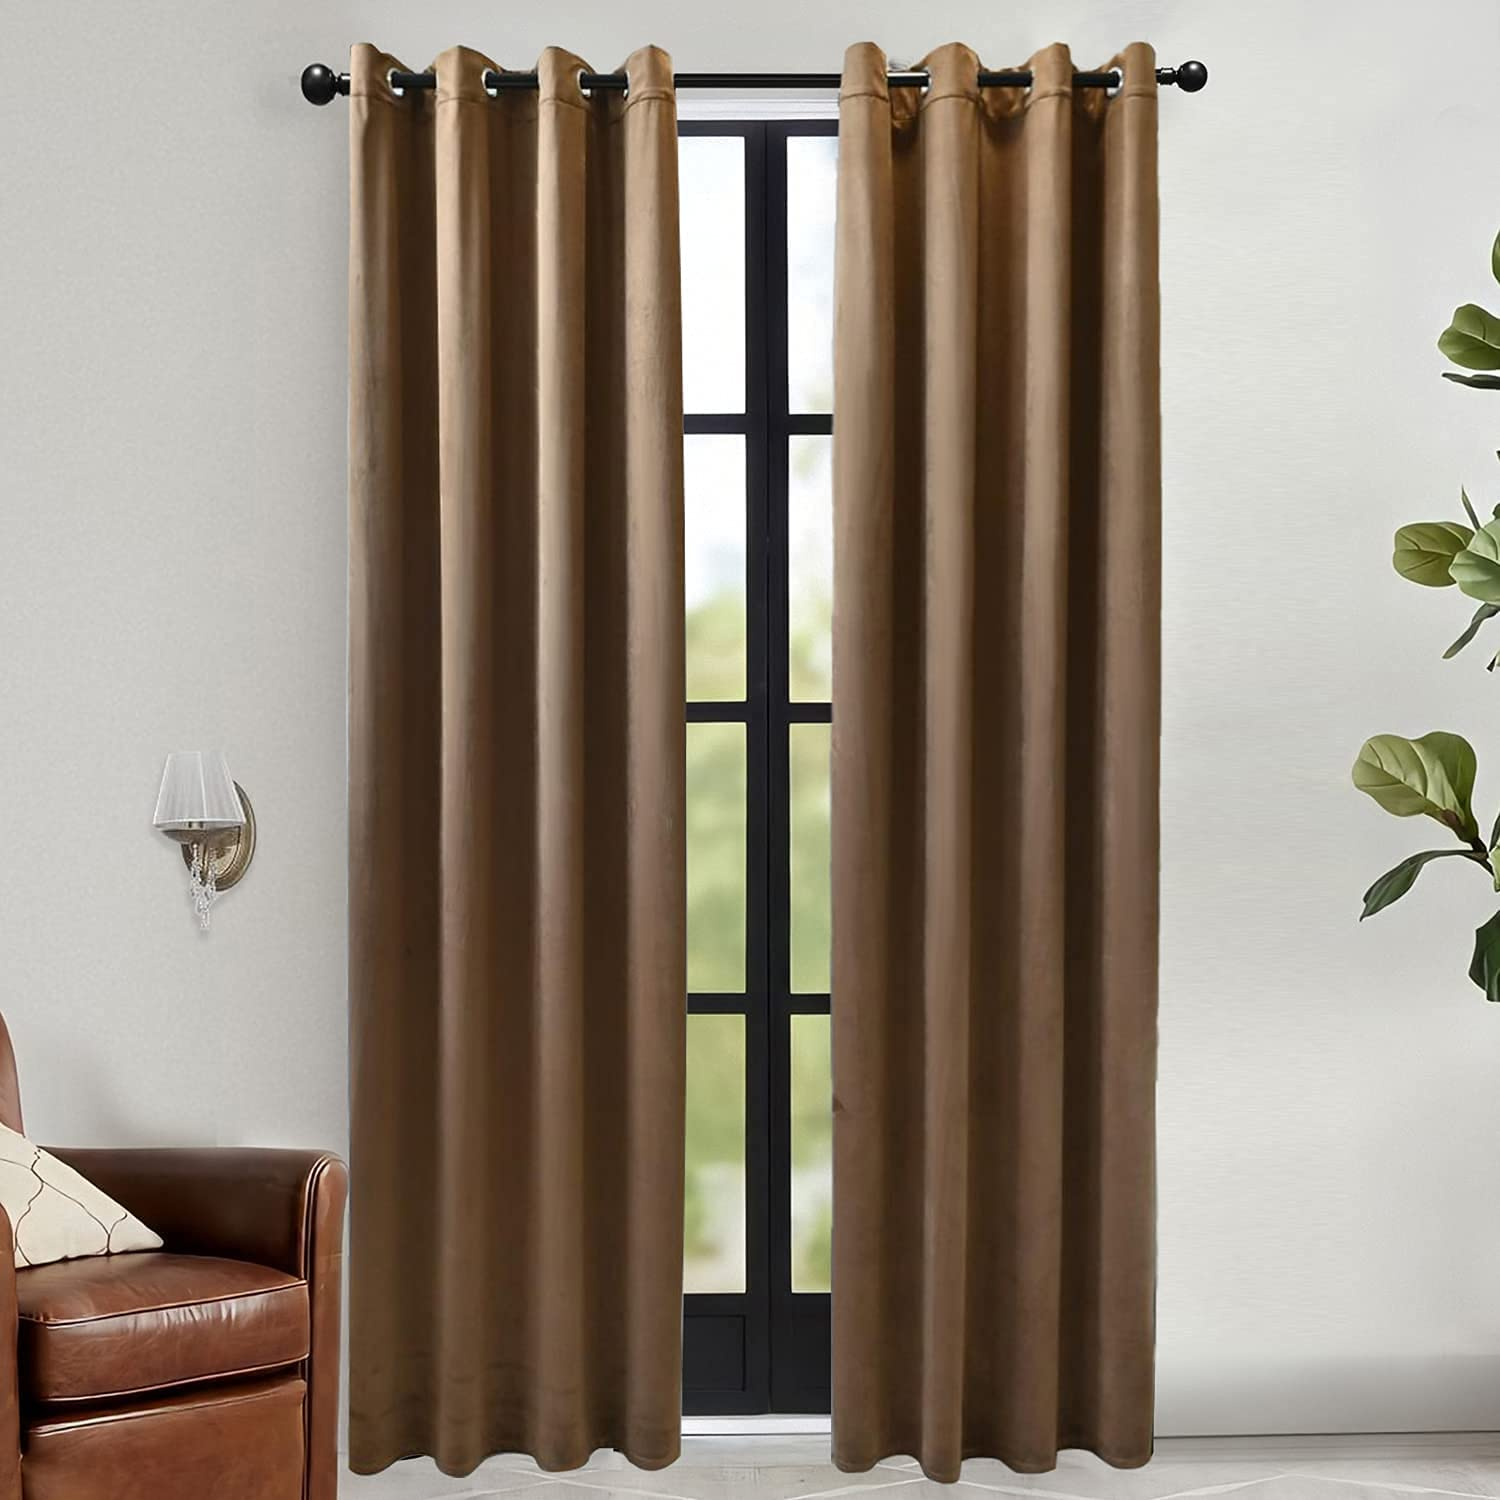 RIORIVA Home Brown Velvet Limited time sale Curtains At the price Long Inches Solid 72